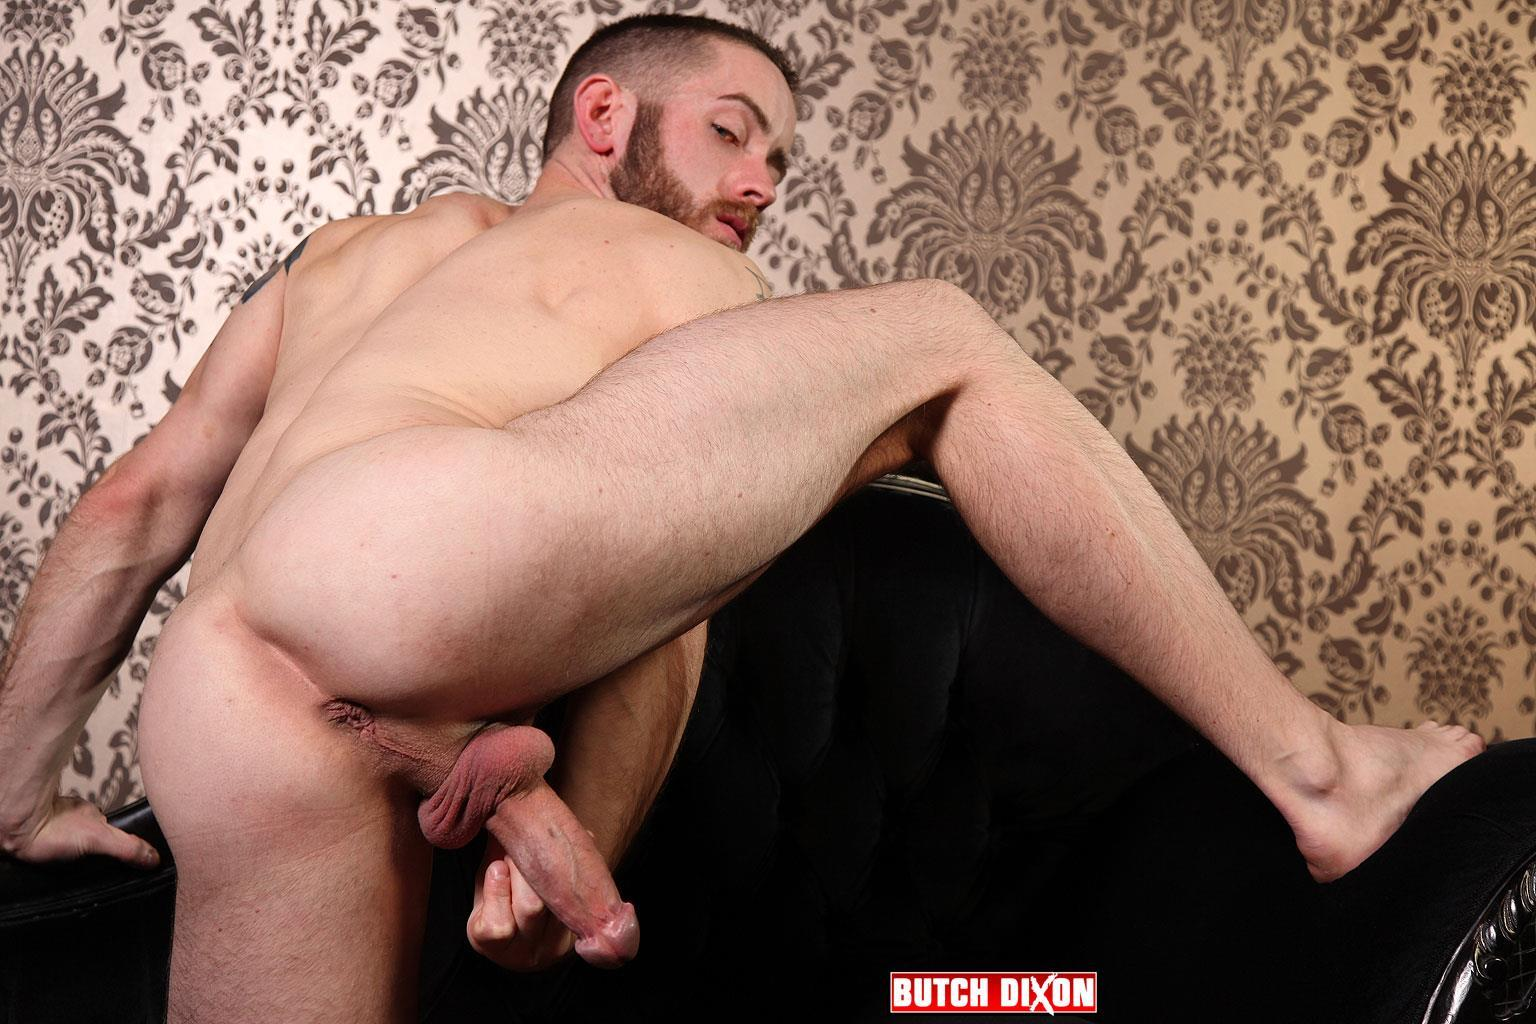 Butch-Dixon-Alfie-Stone-and-Bruno-Fox-Big-Cock-Masculine-Gays-Fucking-Amateur-Gay-Porn-17 Freaky Amateur Hairy Masculine Men Fucking With Thick Cocks